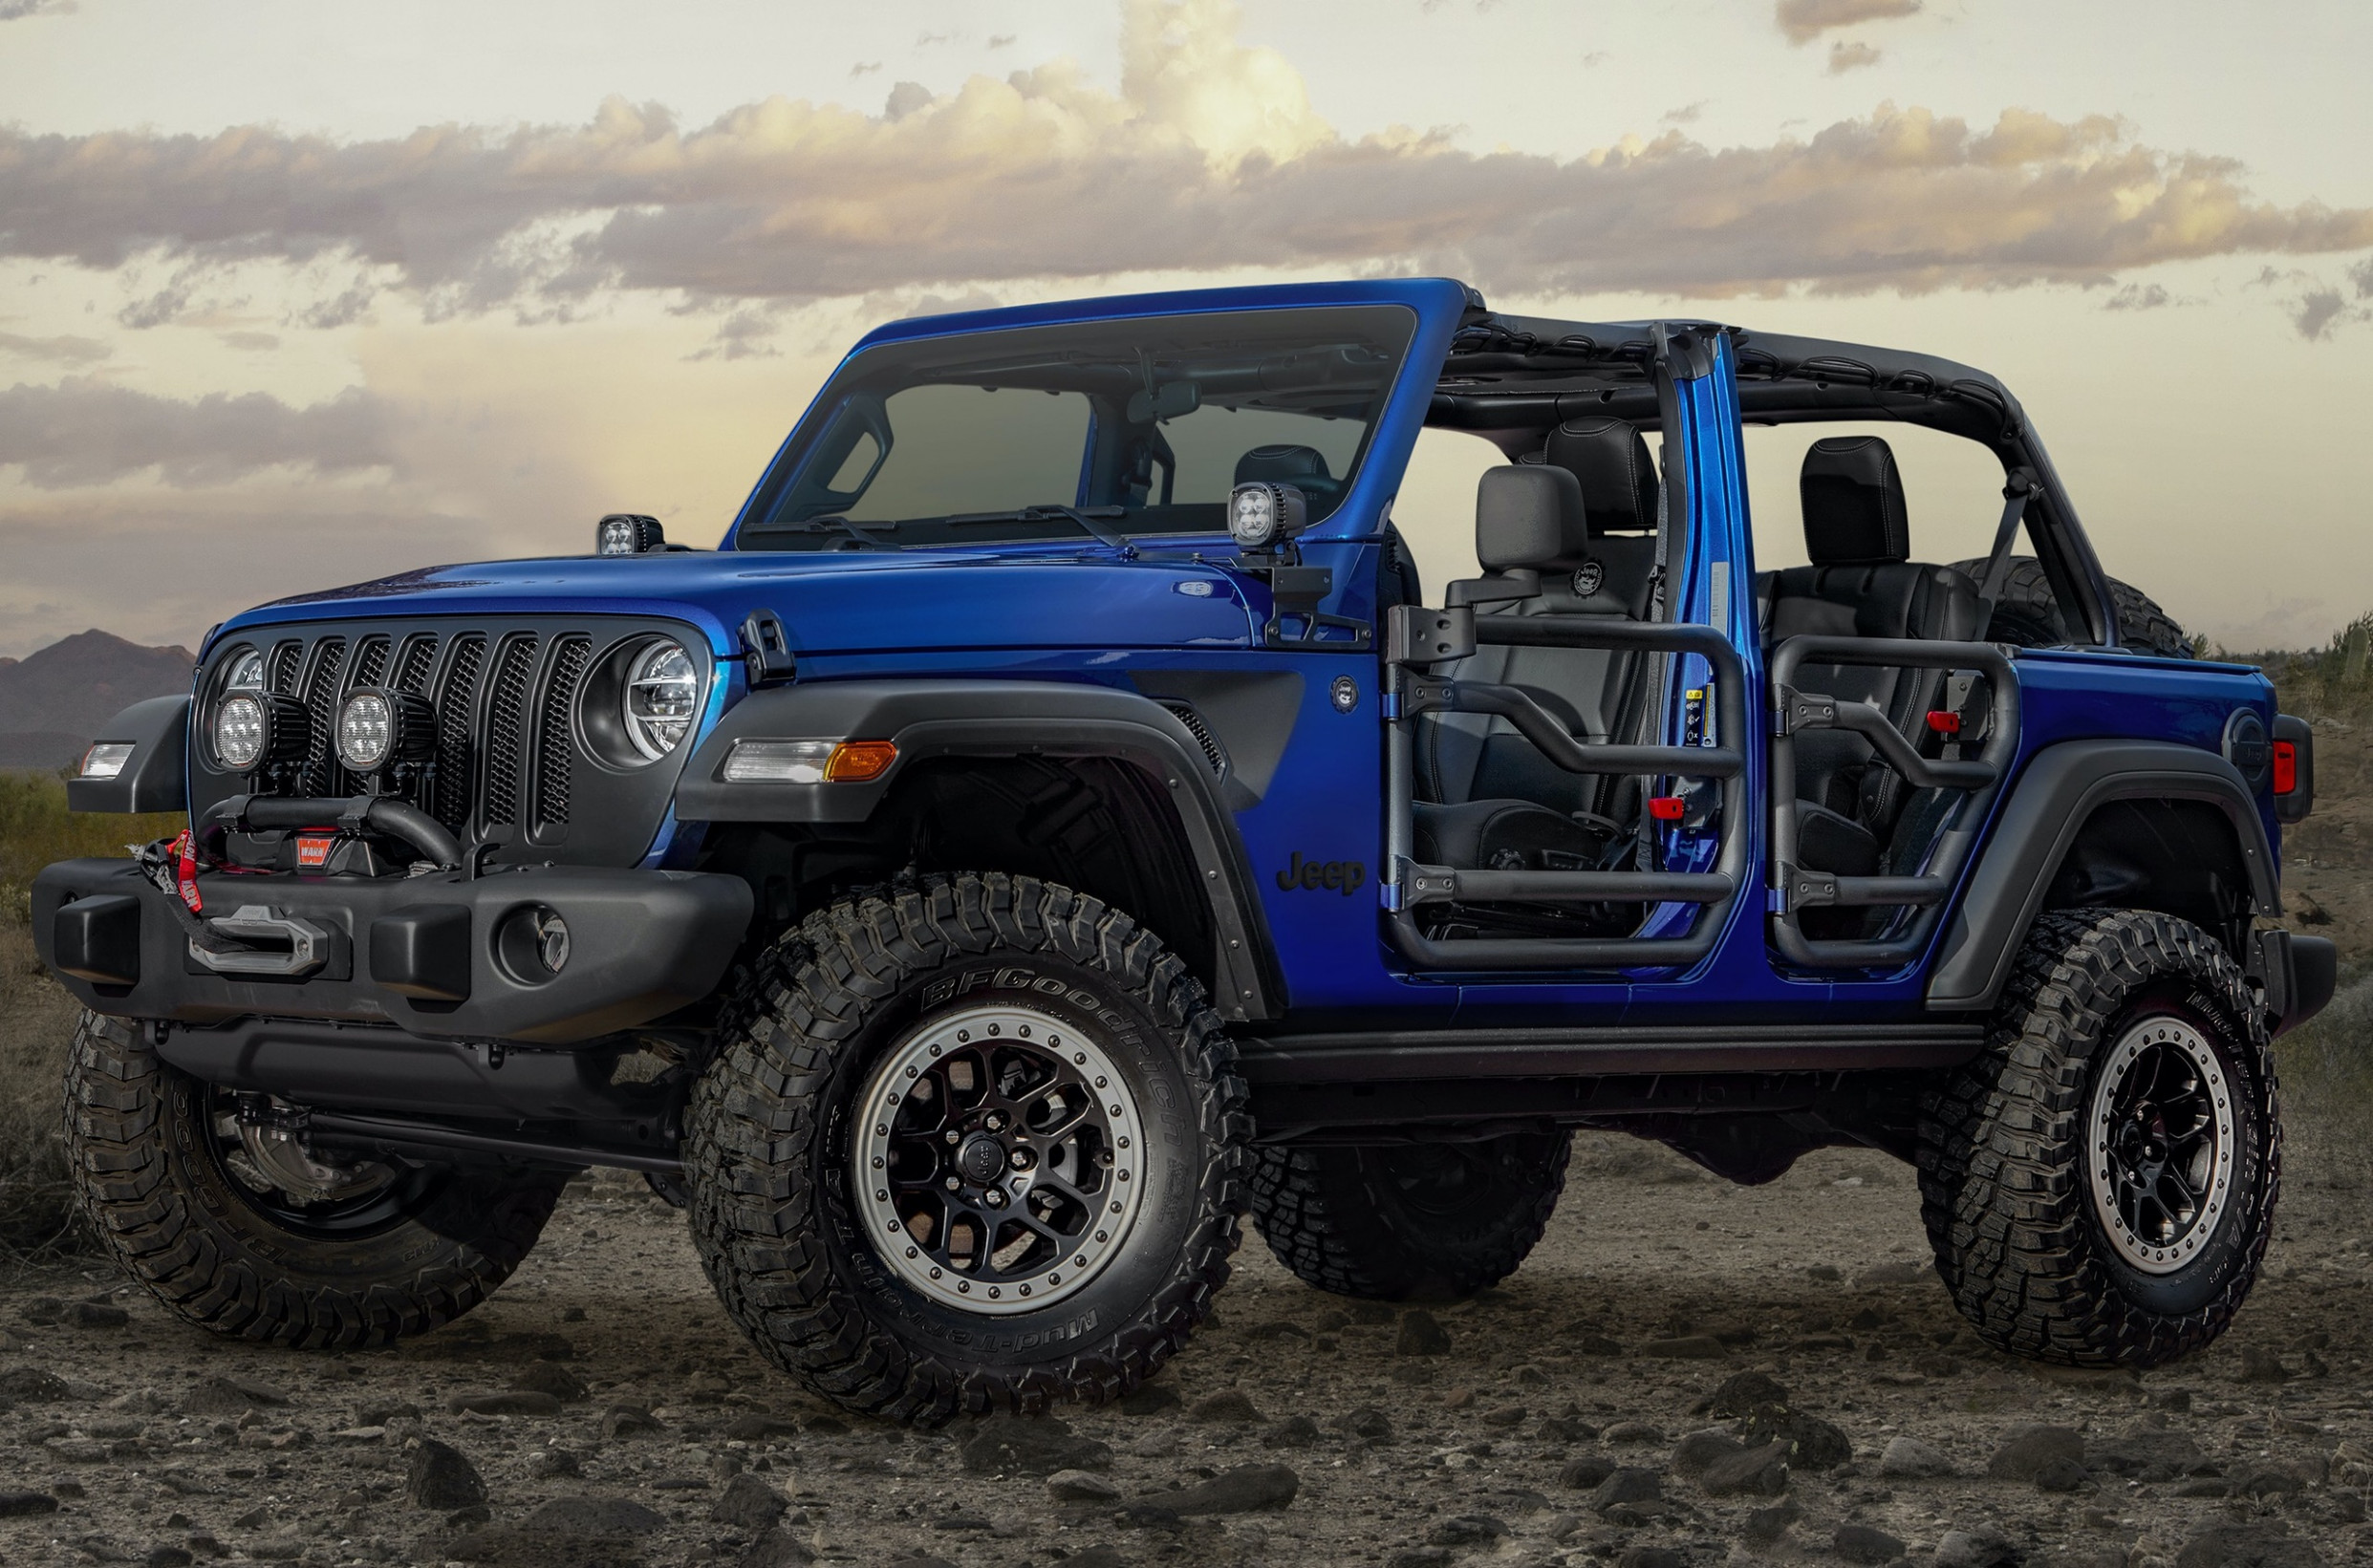 Release Date and Concept Jeep Wrangler Rubicon 2022